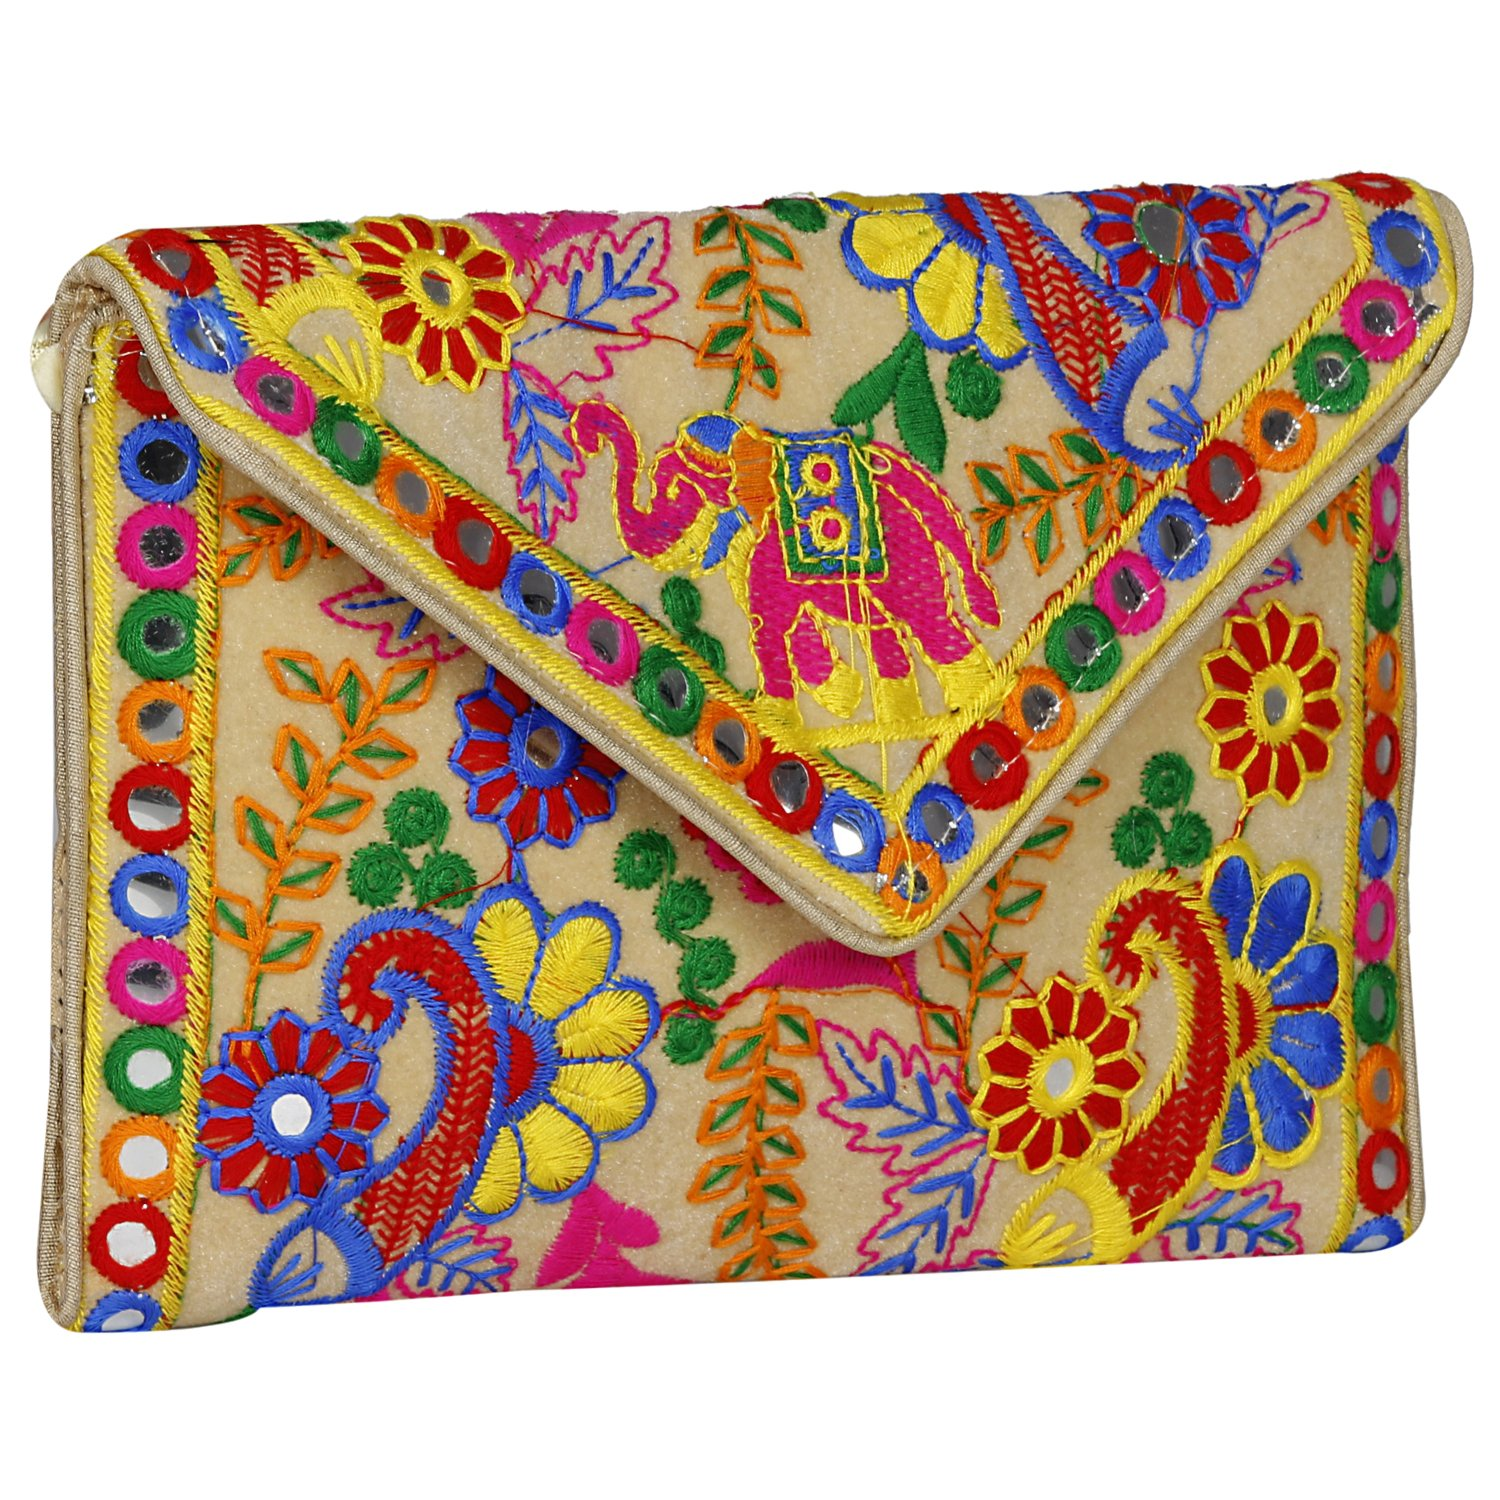 Aaditri International Elephant Printed- Jaipuri Art Sling Bag- Easy to Carry- Zipper Closure Fold Over Clutch Purse Long Strap